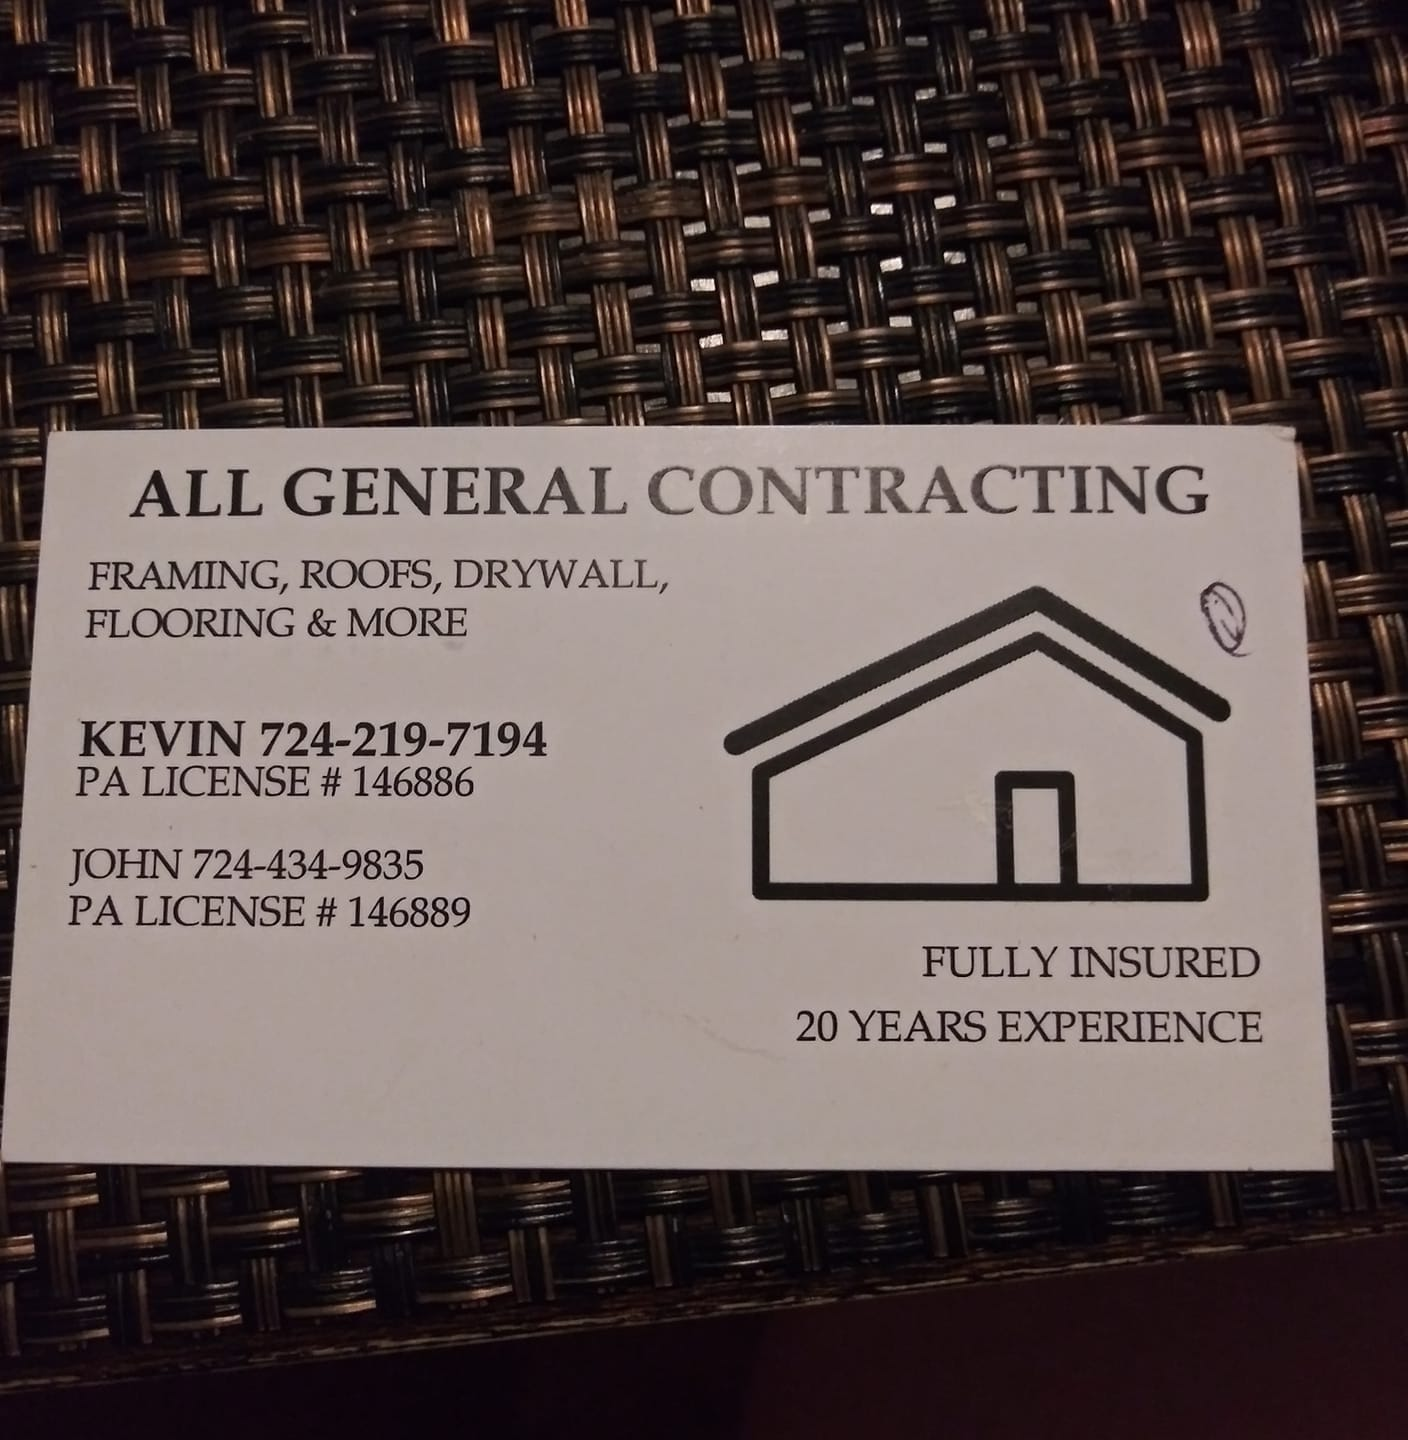 All General Contracting